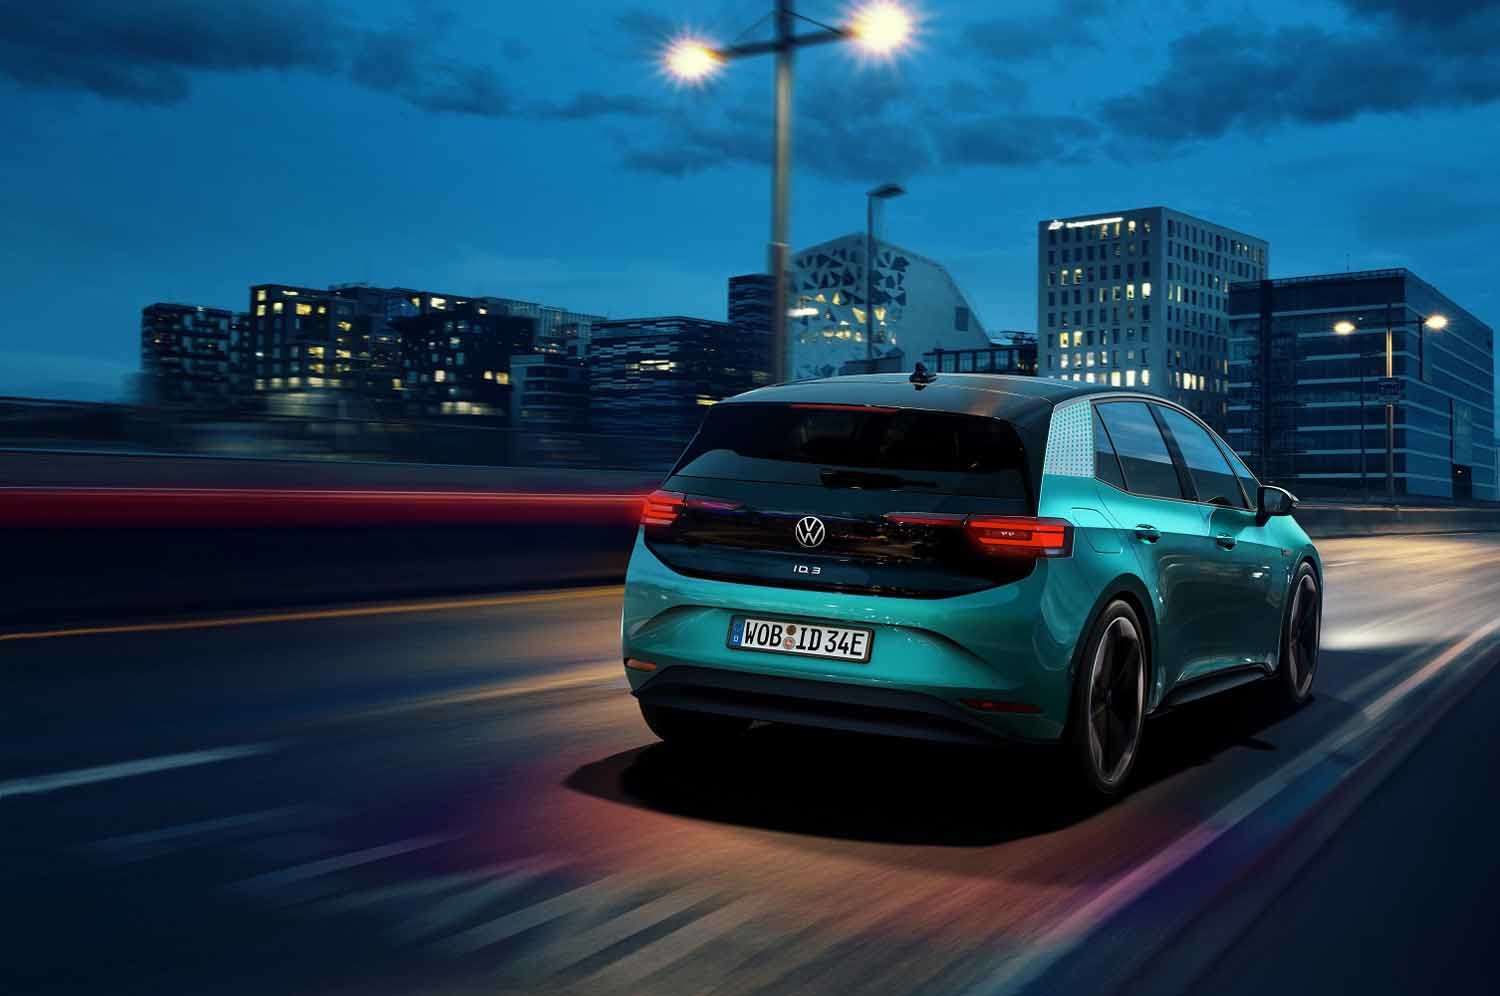 2020 volkswagen id 3 electric car orders open first edition detailed vw official 6